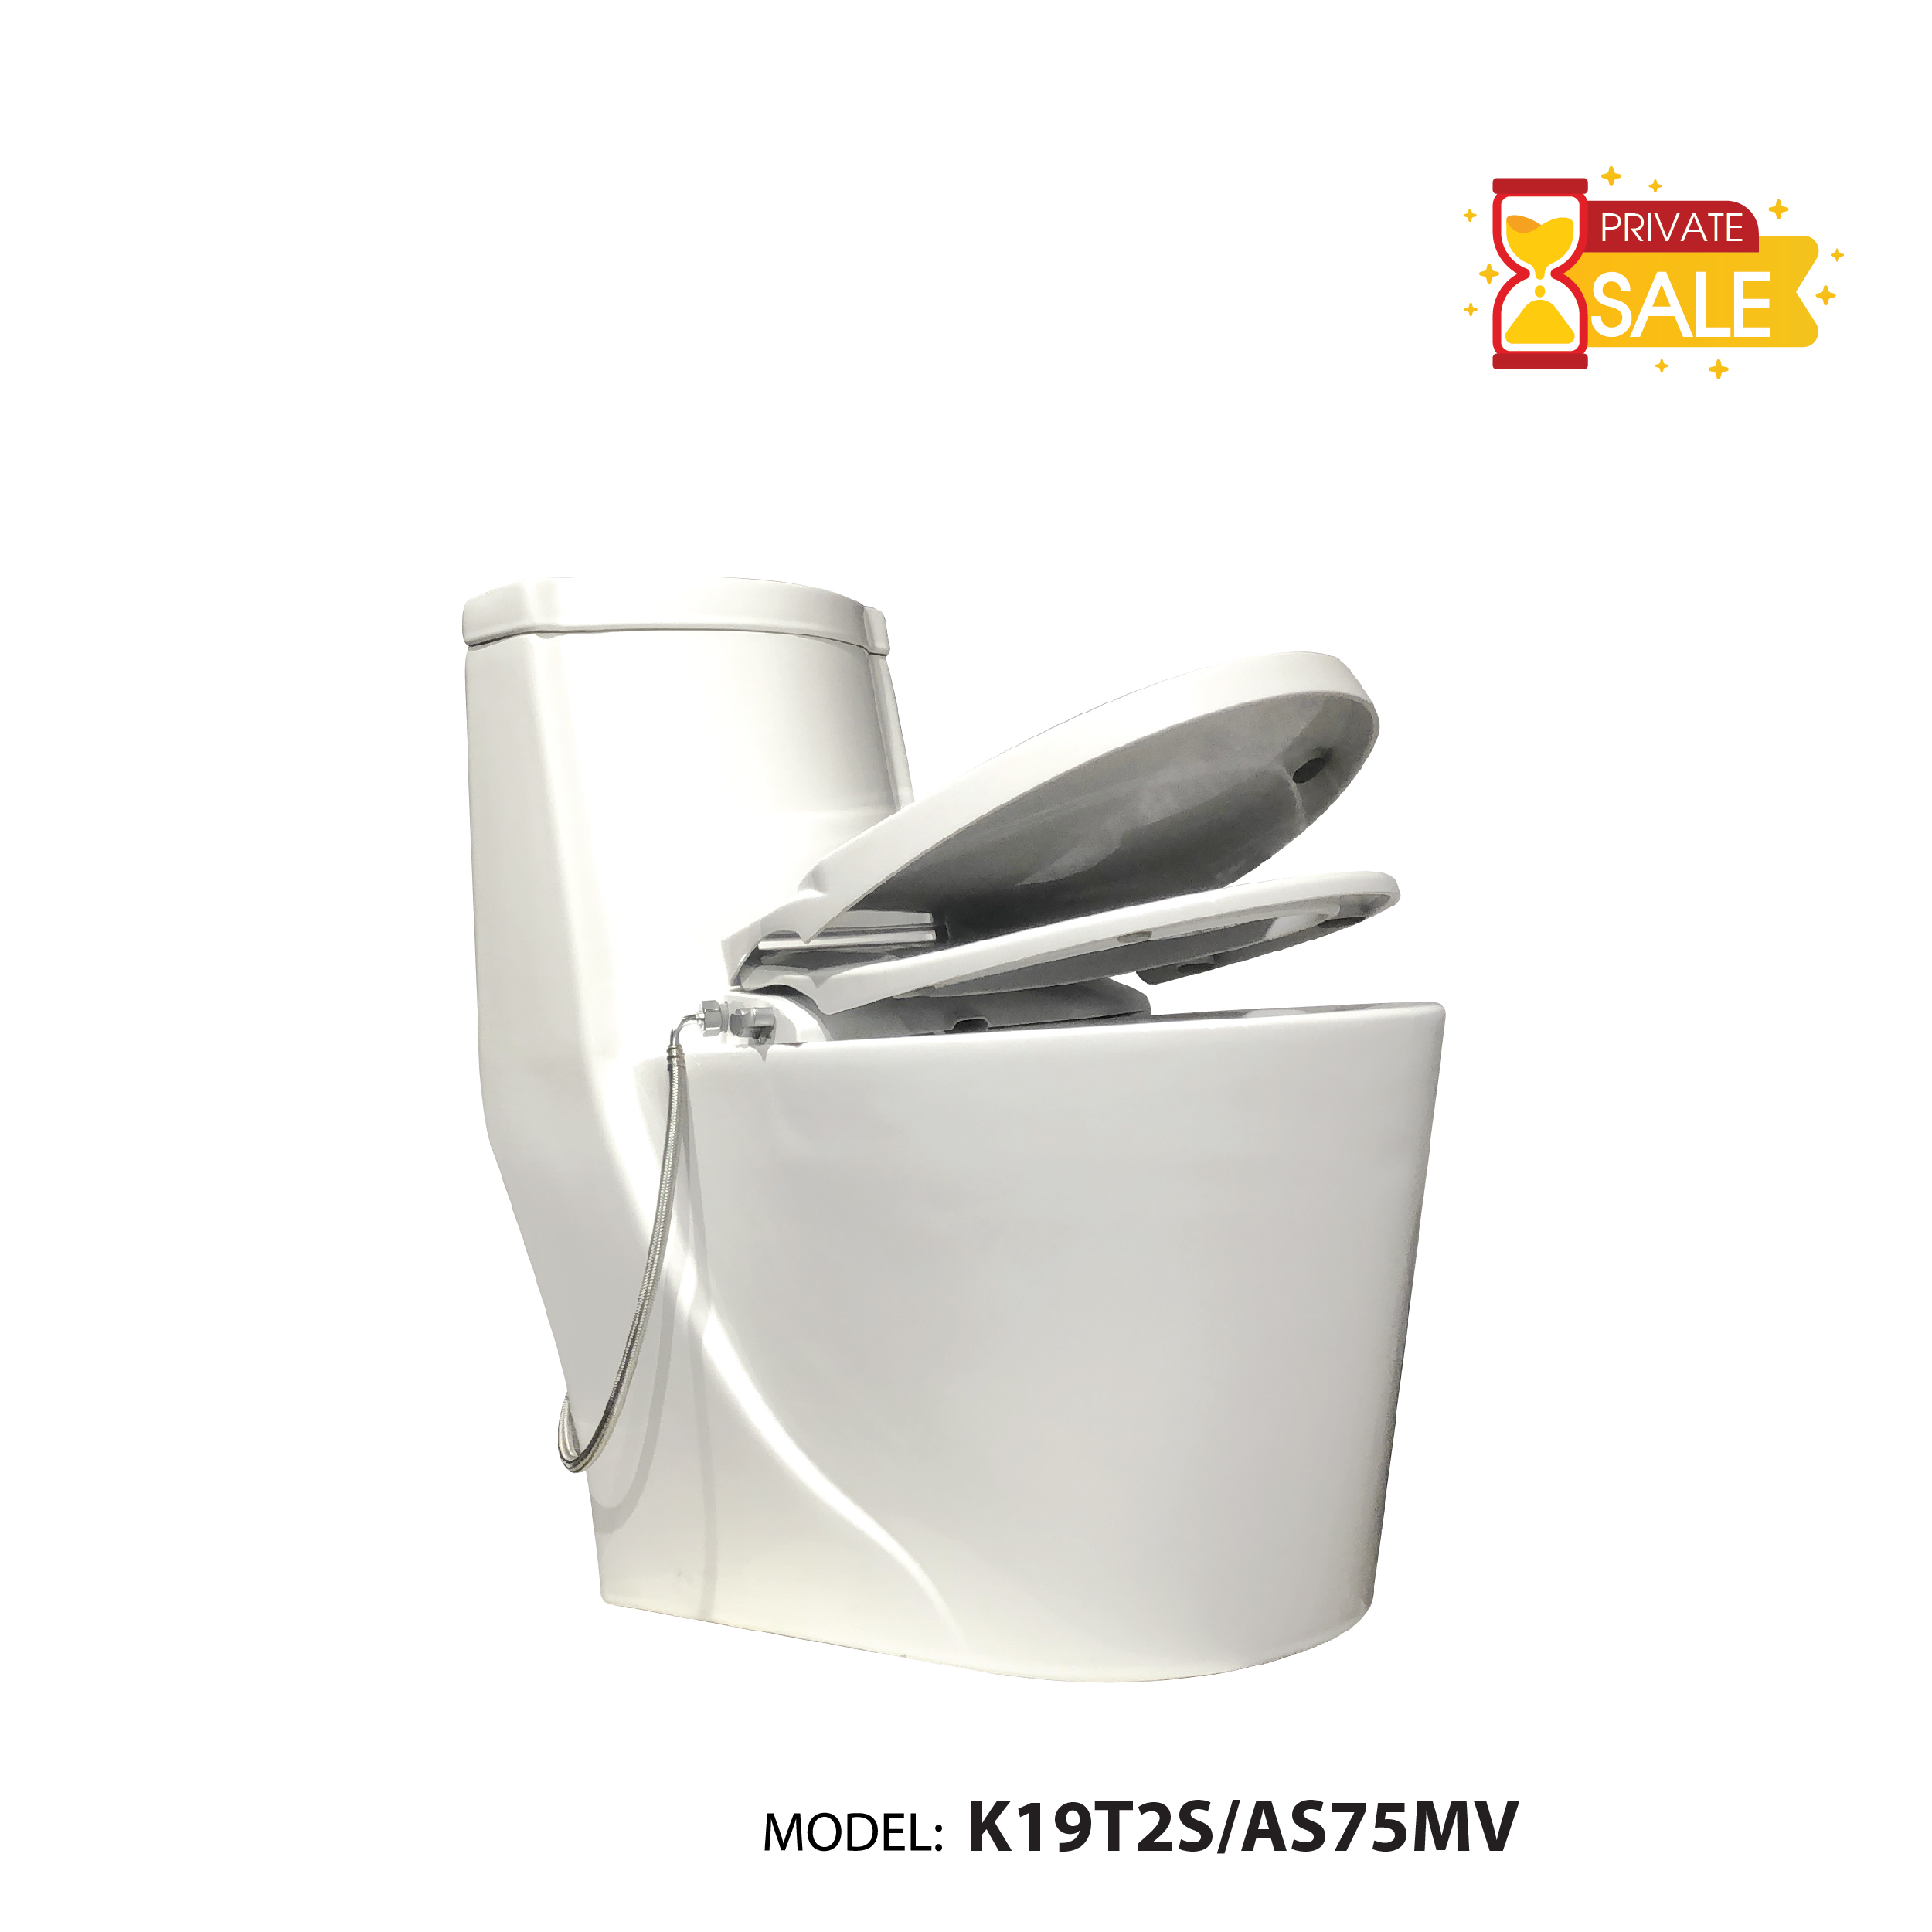 BỒN CẦU 1 KHỐI CARANO K19T2S/AS75MV ((TOILET MODEL: K19T2S/AS75MV)